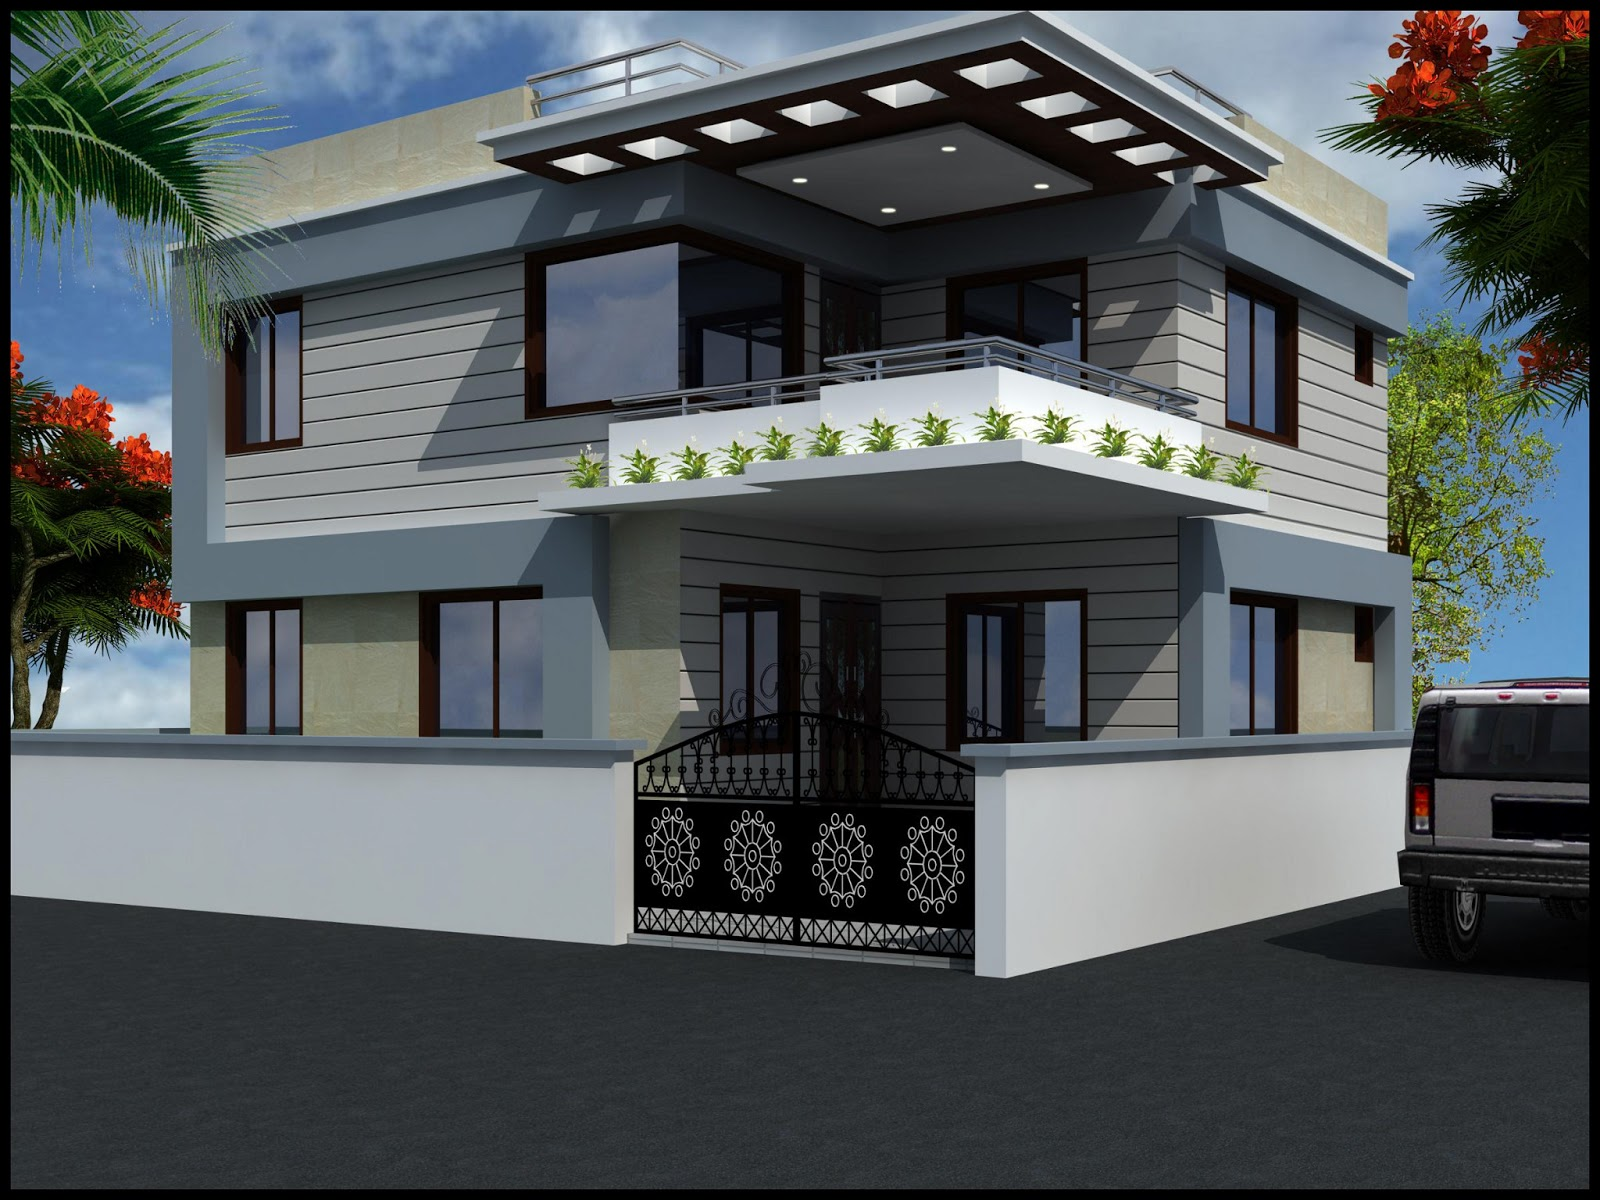 Modern beautiful duplex house design home decorating ideas for Duplex home plan design